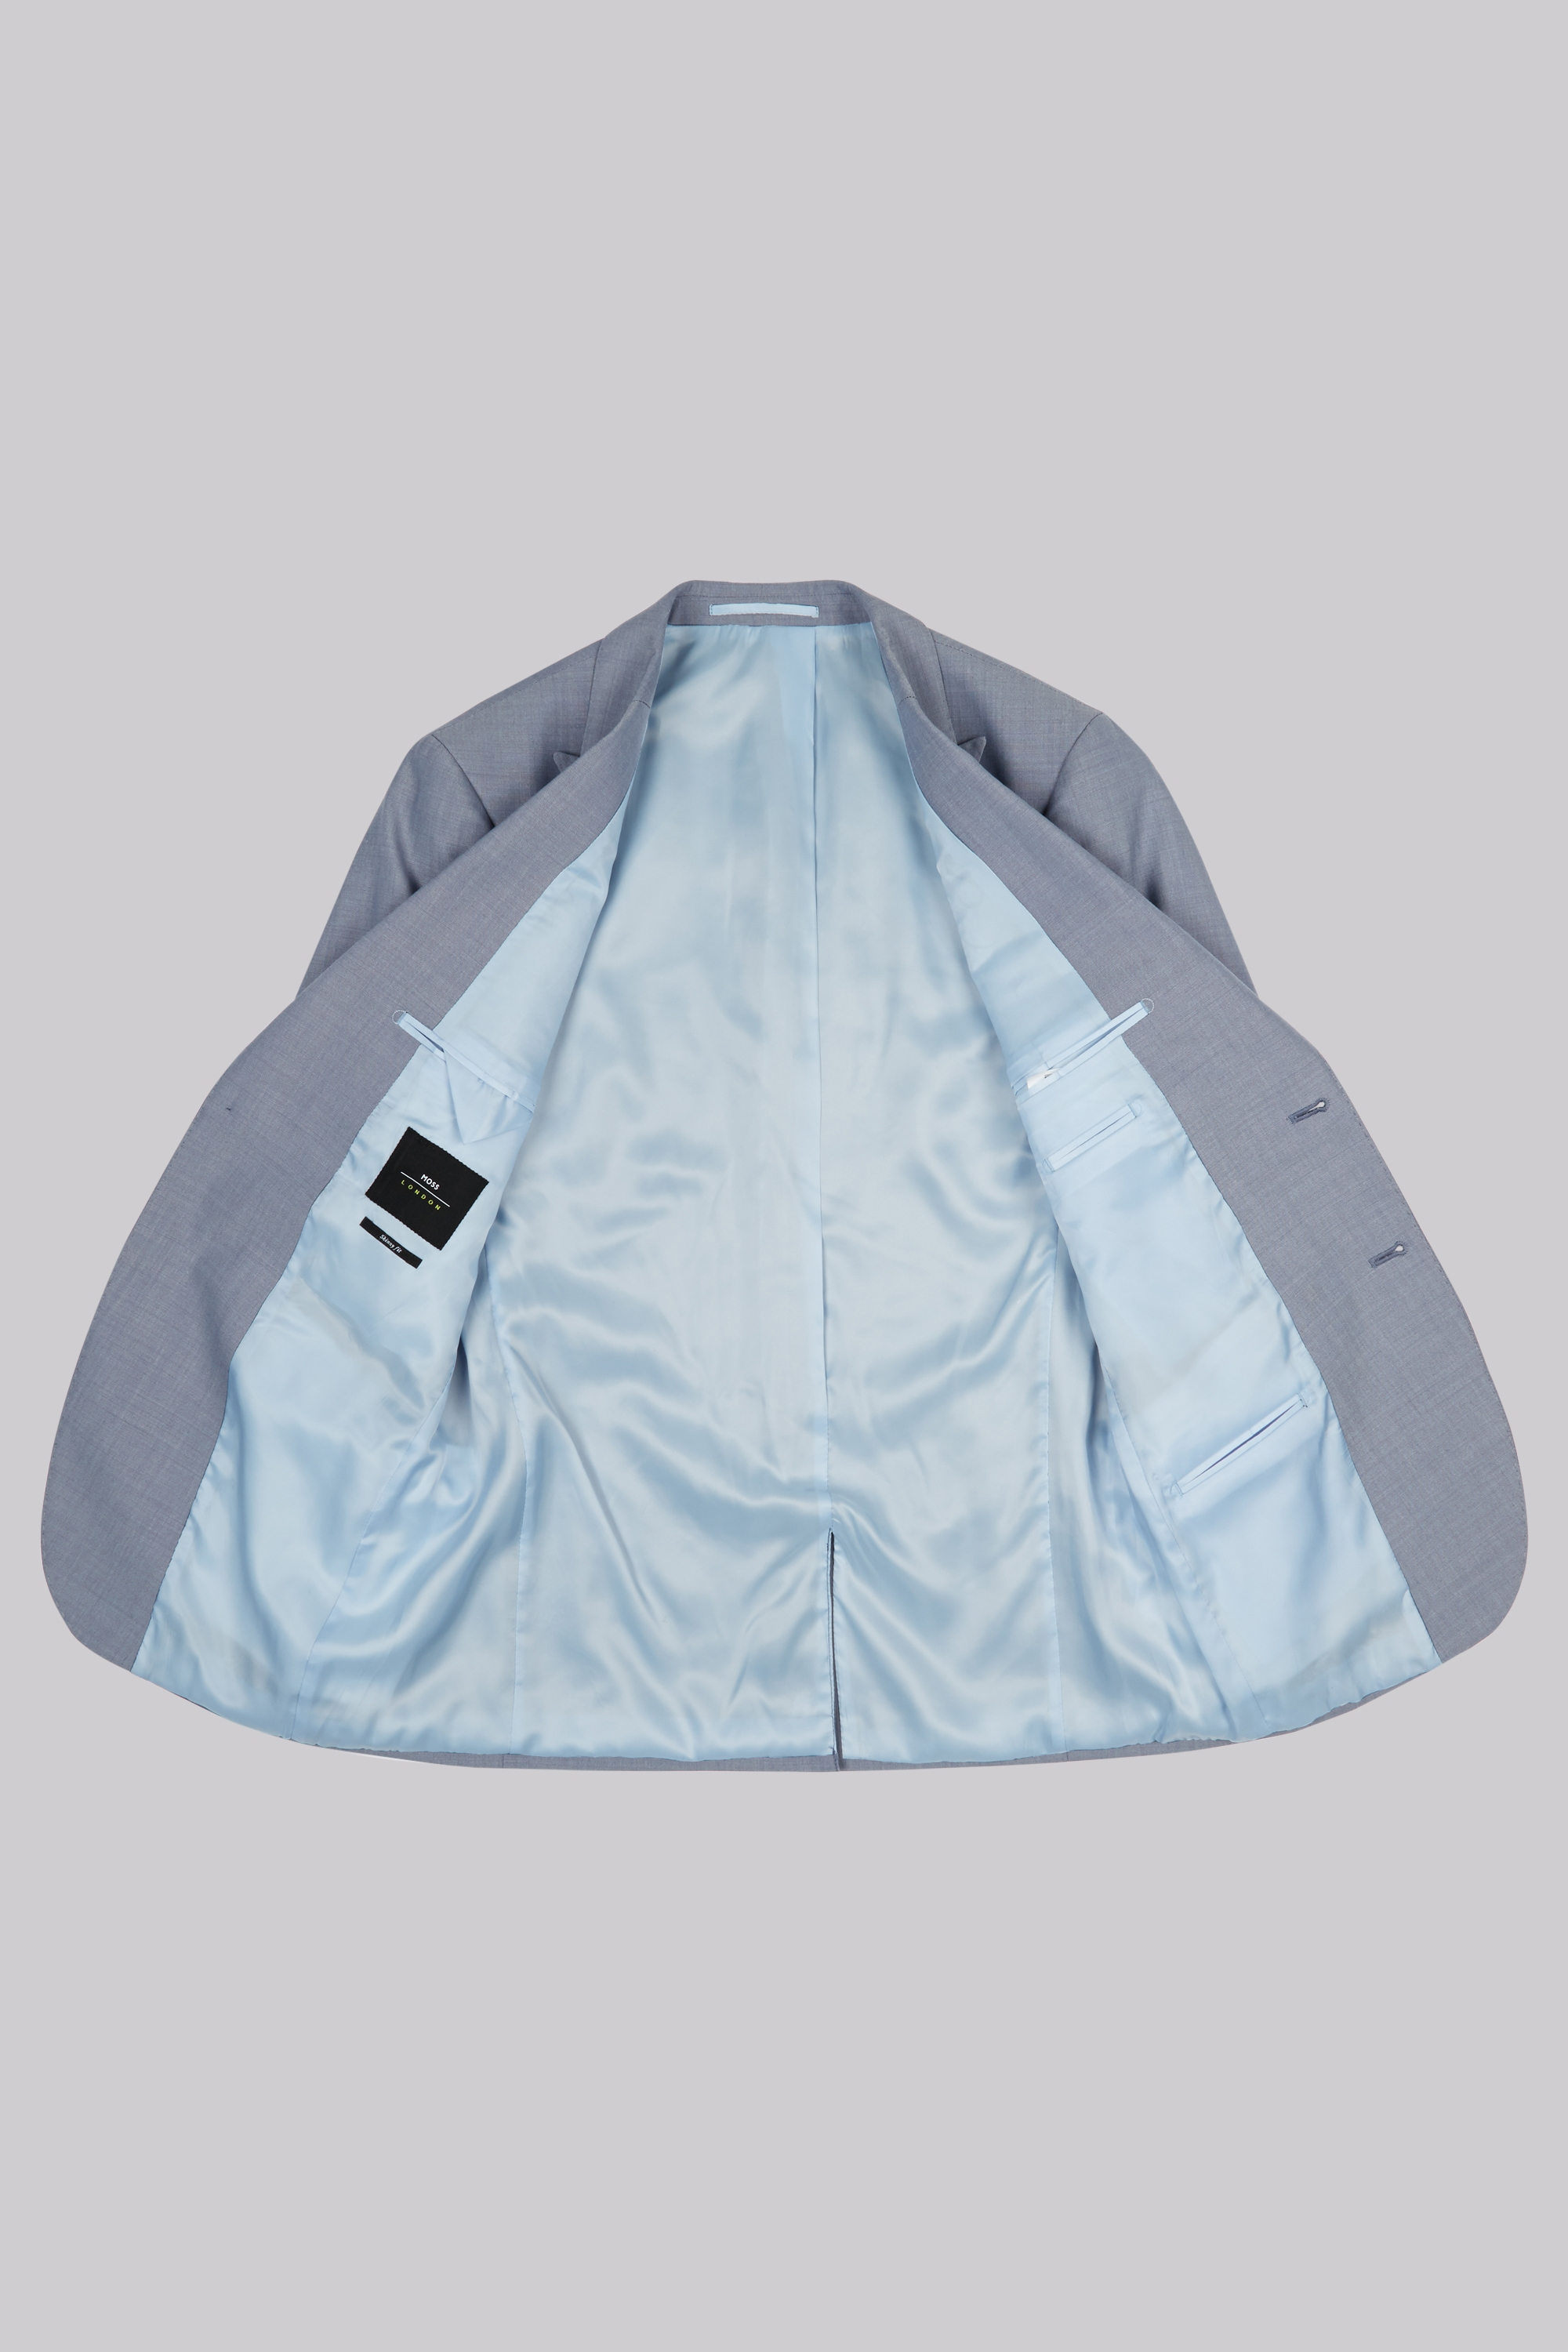 Moss London Skinny Fit Ice Blue Jacket